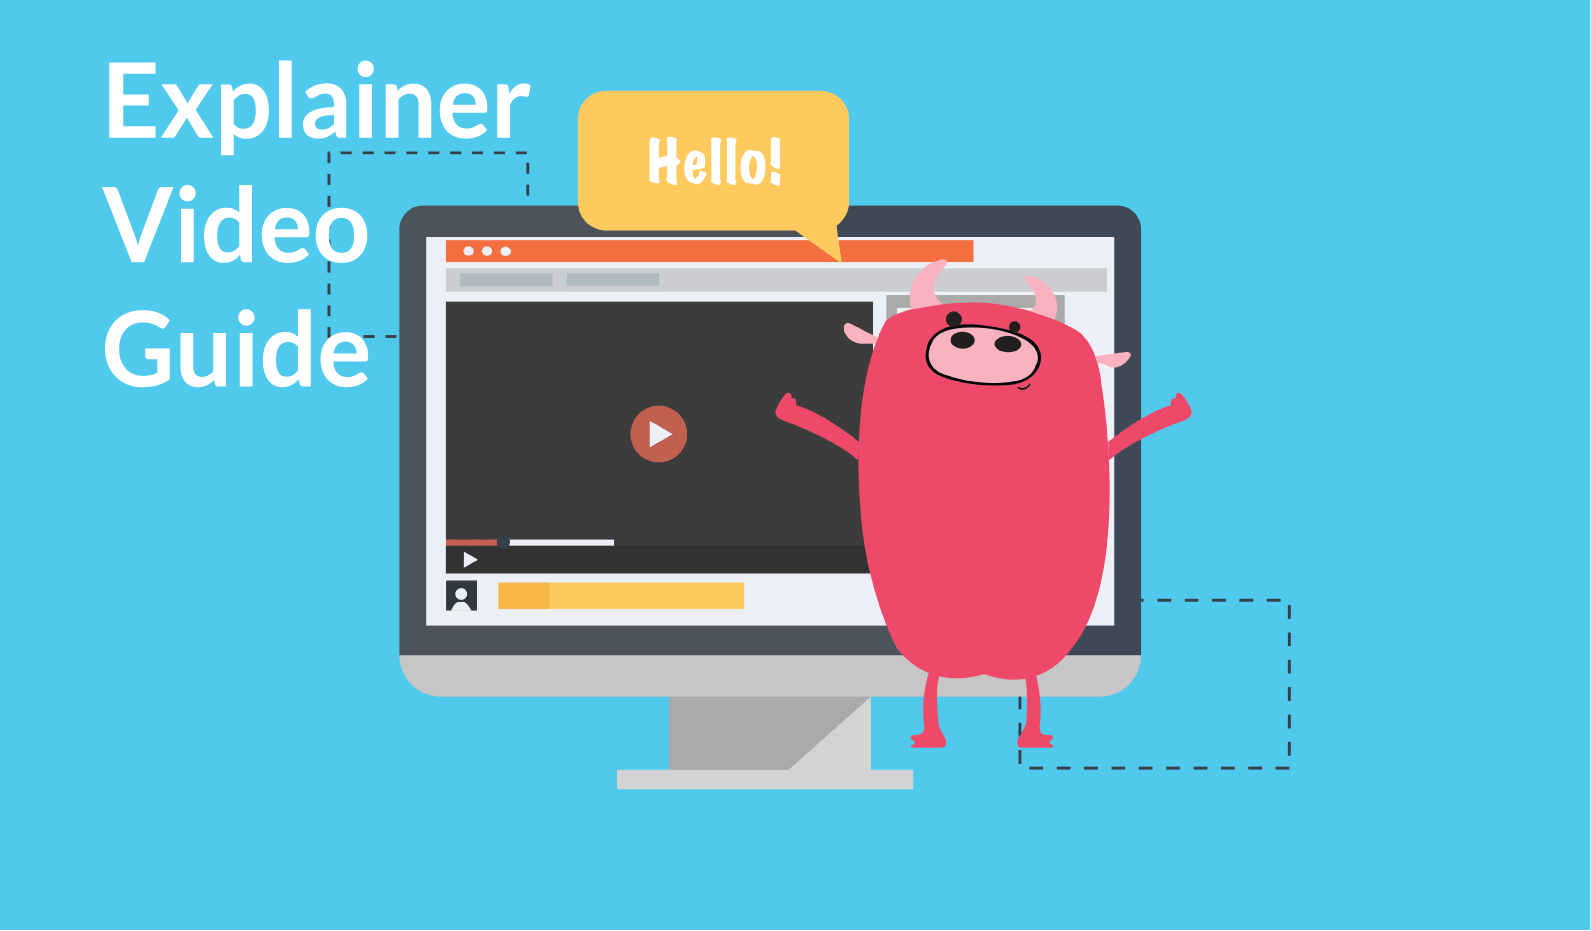 explainer videos guide hero explainer video min